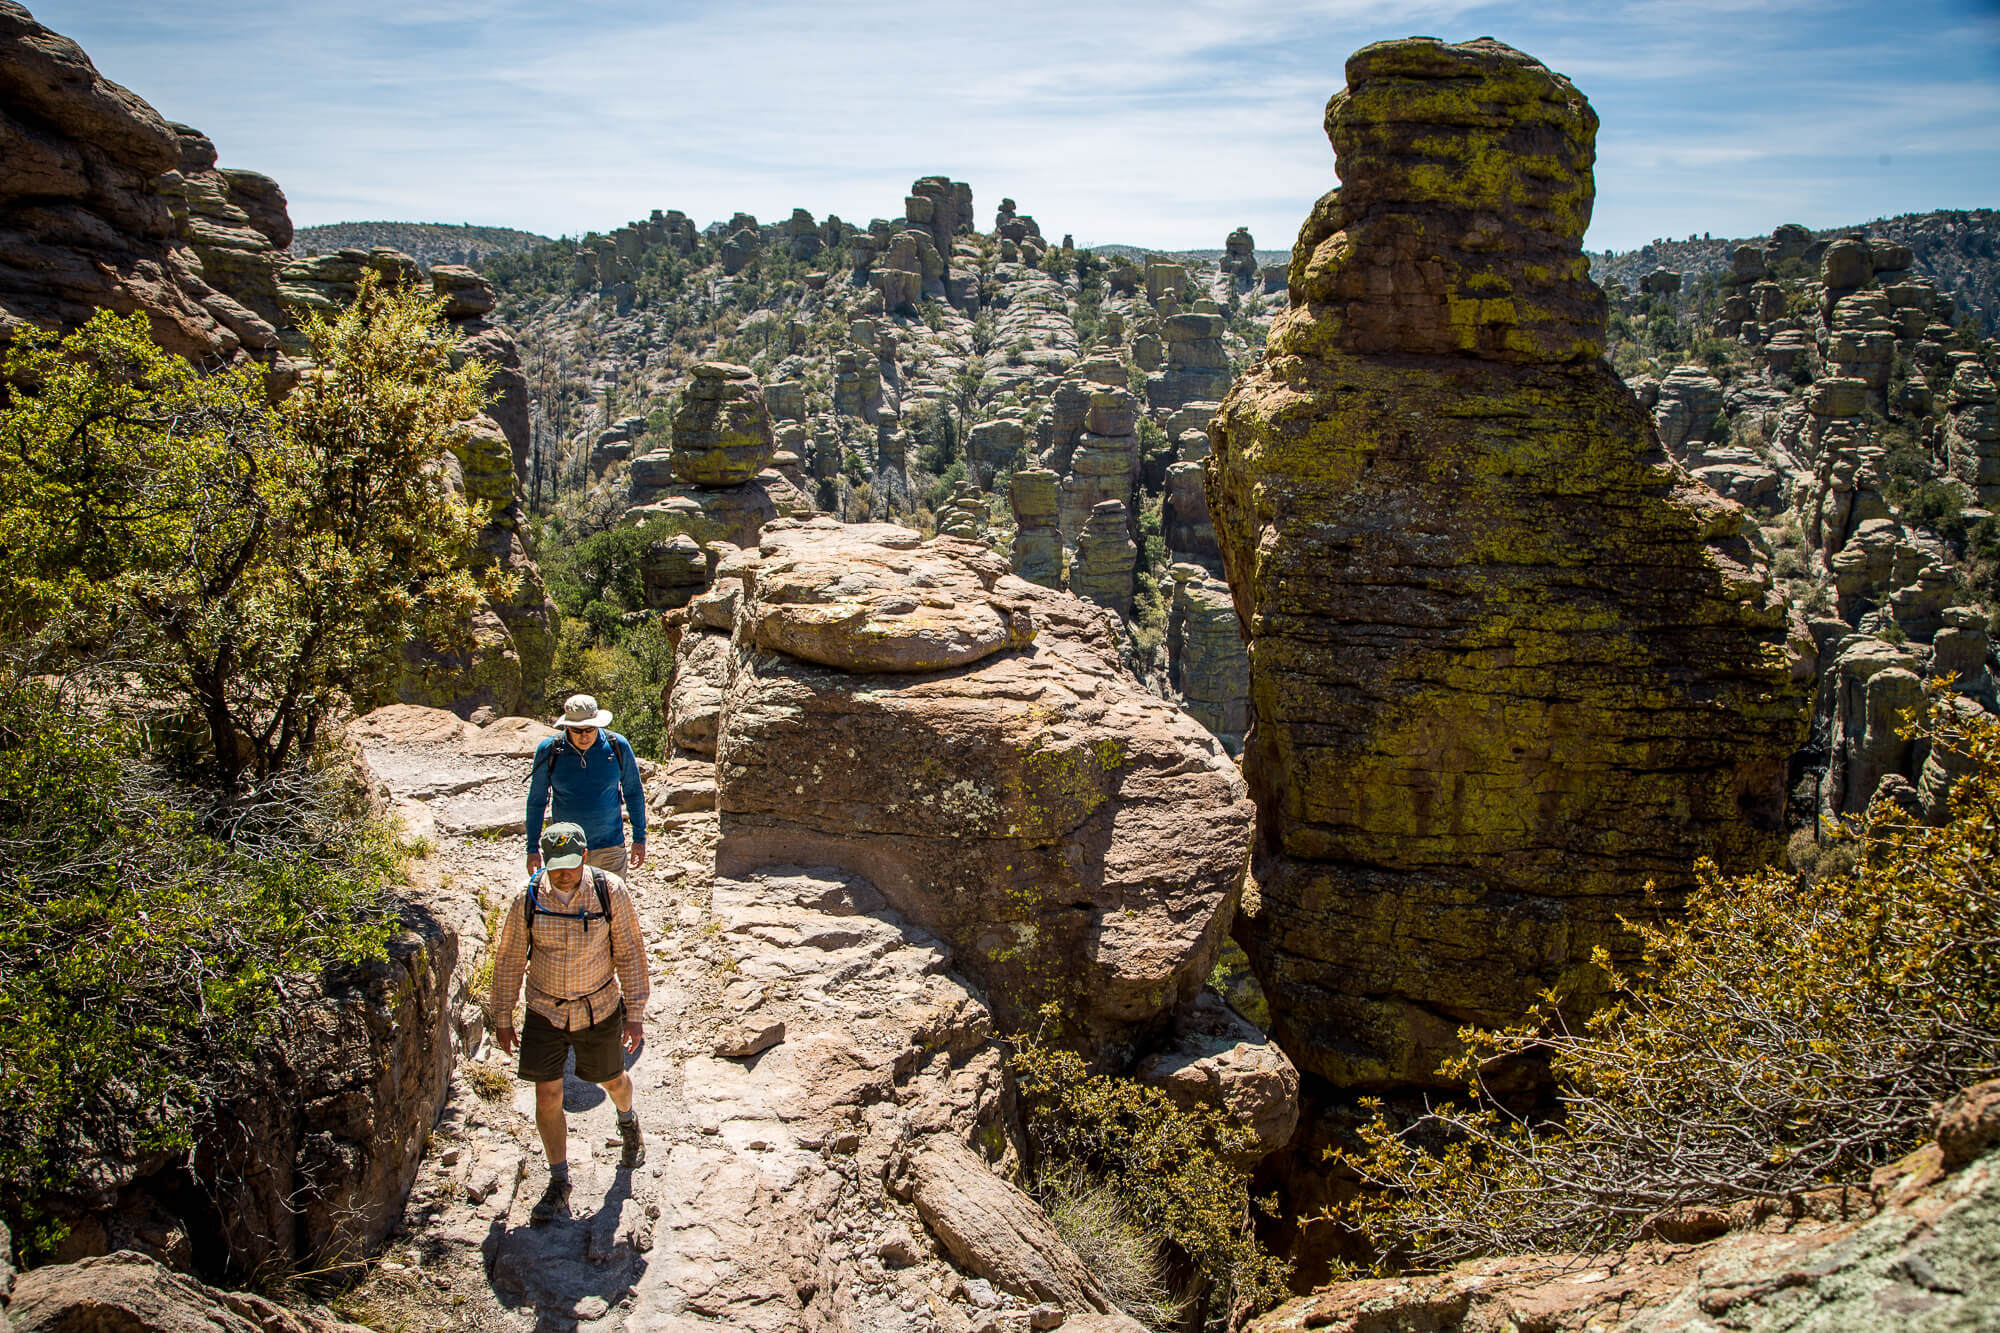 Hiking in Chiricahua National Monument